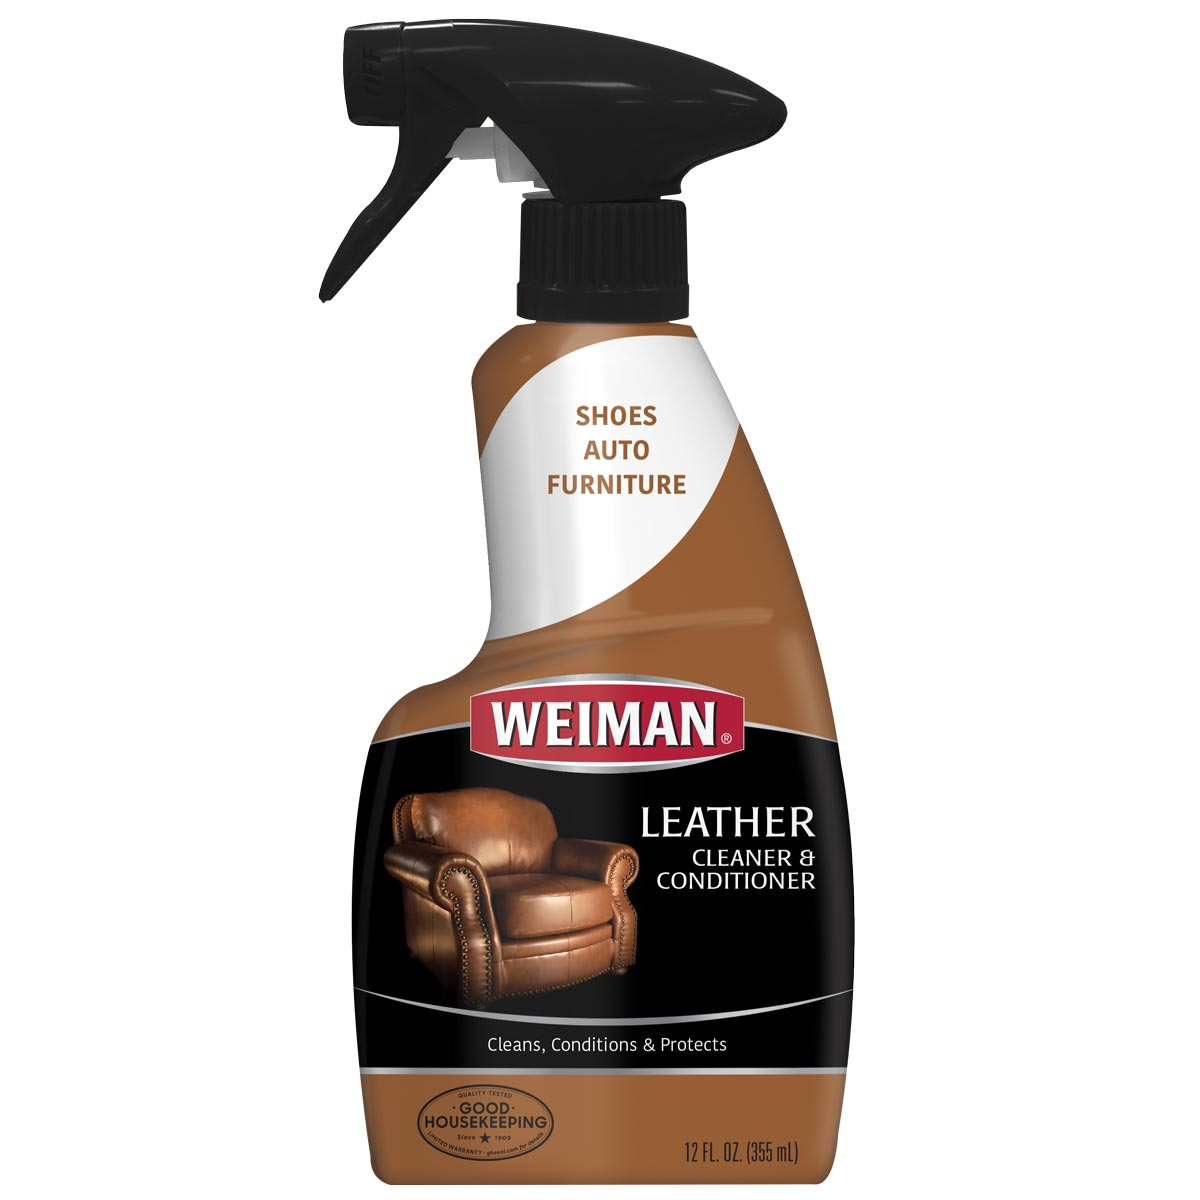 https://googone.com/media/catalog/product/w/e/weiman-leather-cleaner-spray_front.jpg